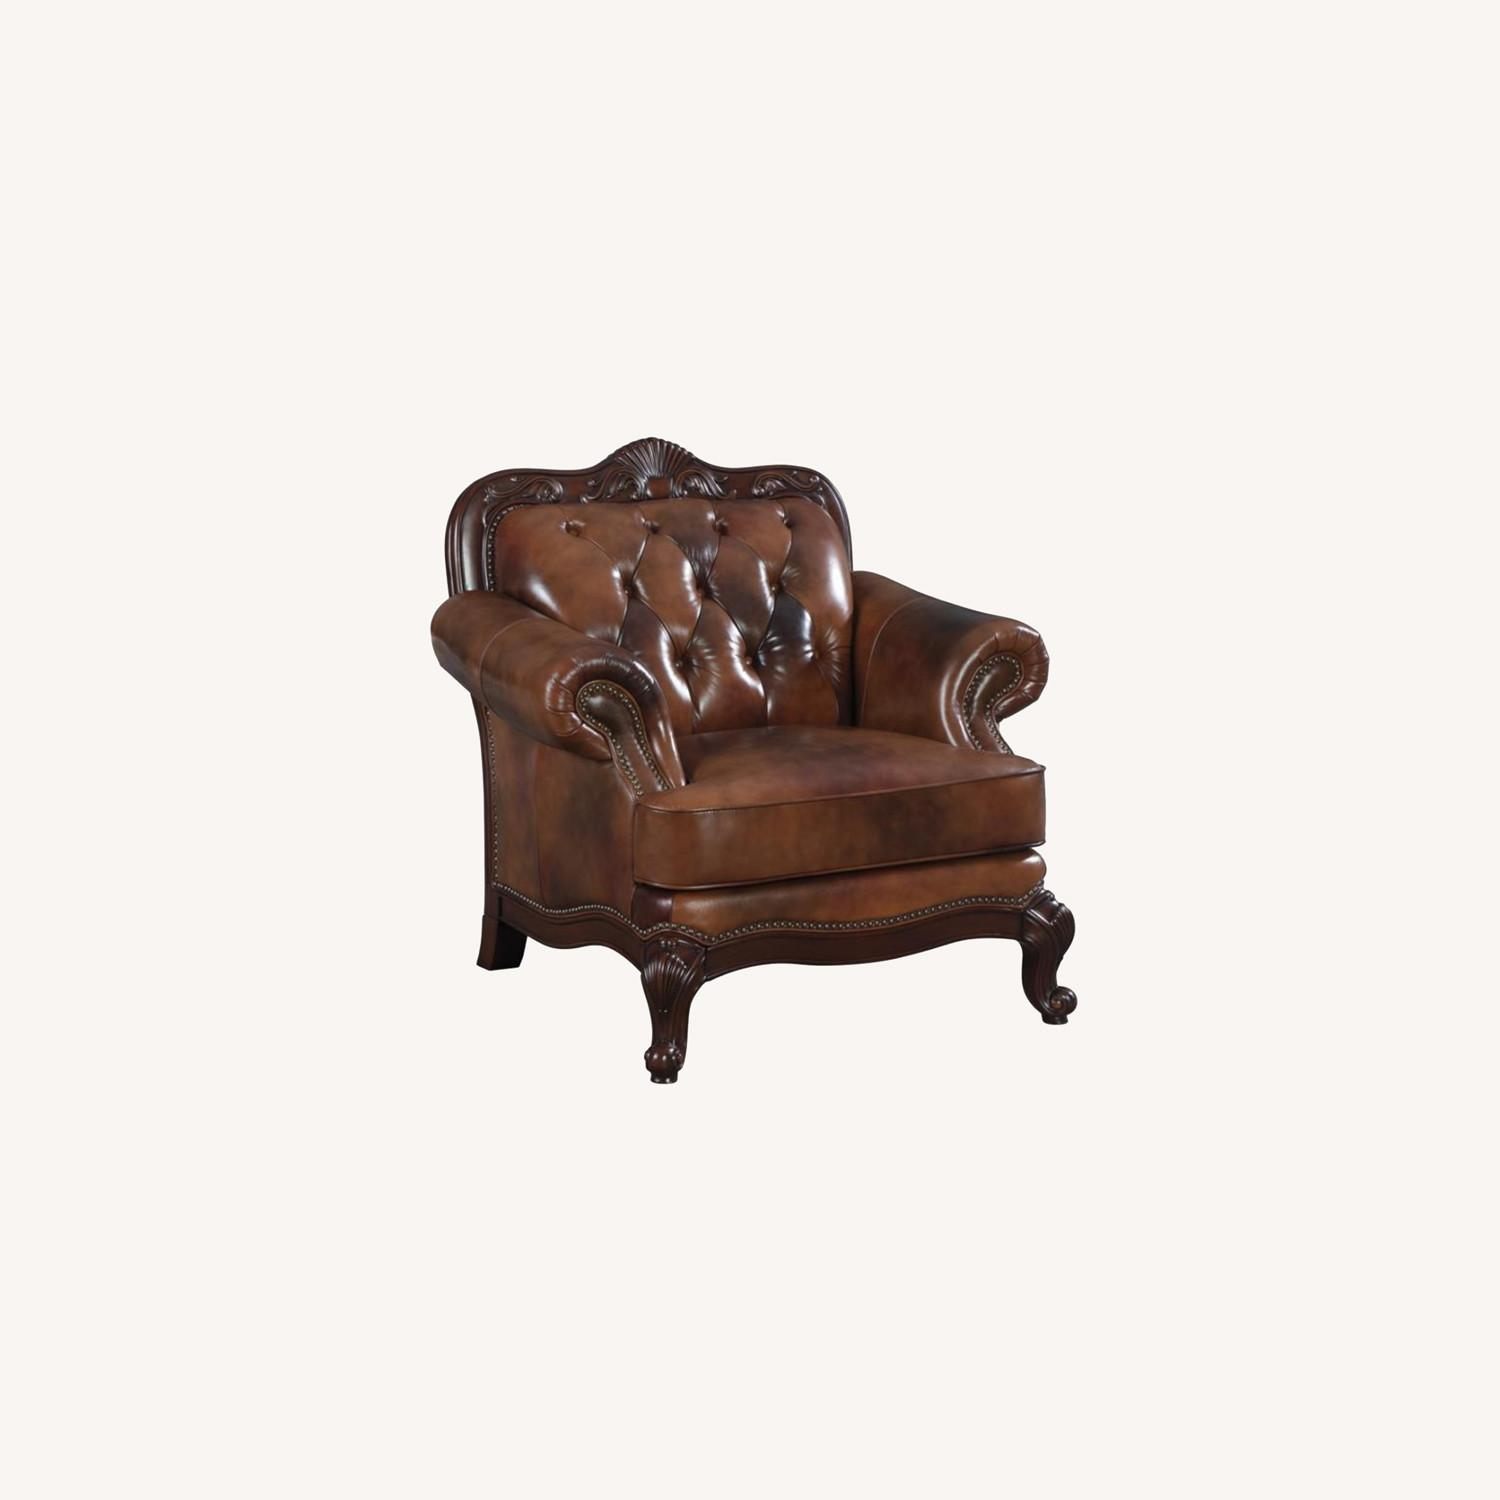 Chair In Tri-Tone Leather Finish - image-3